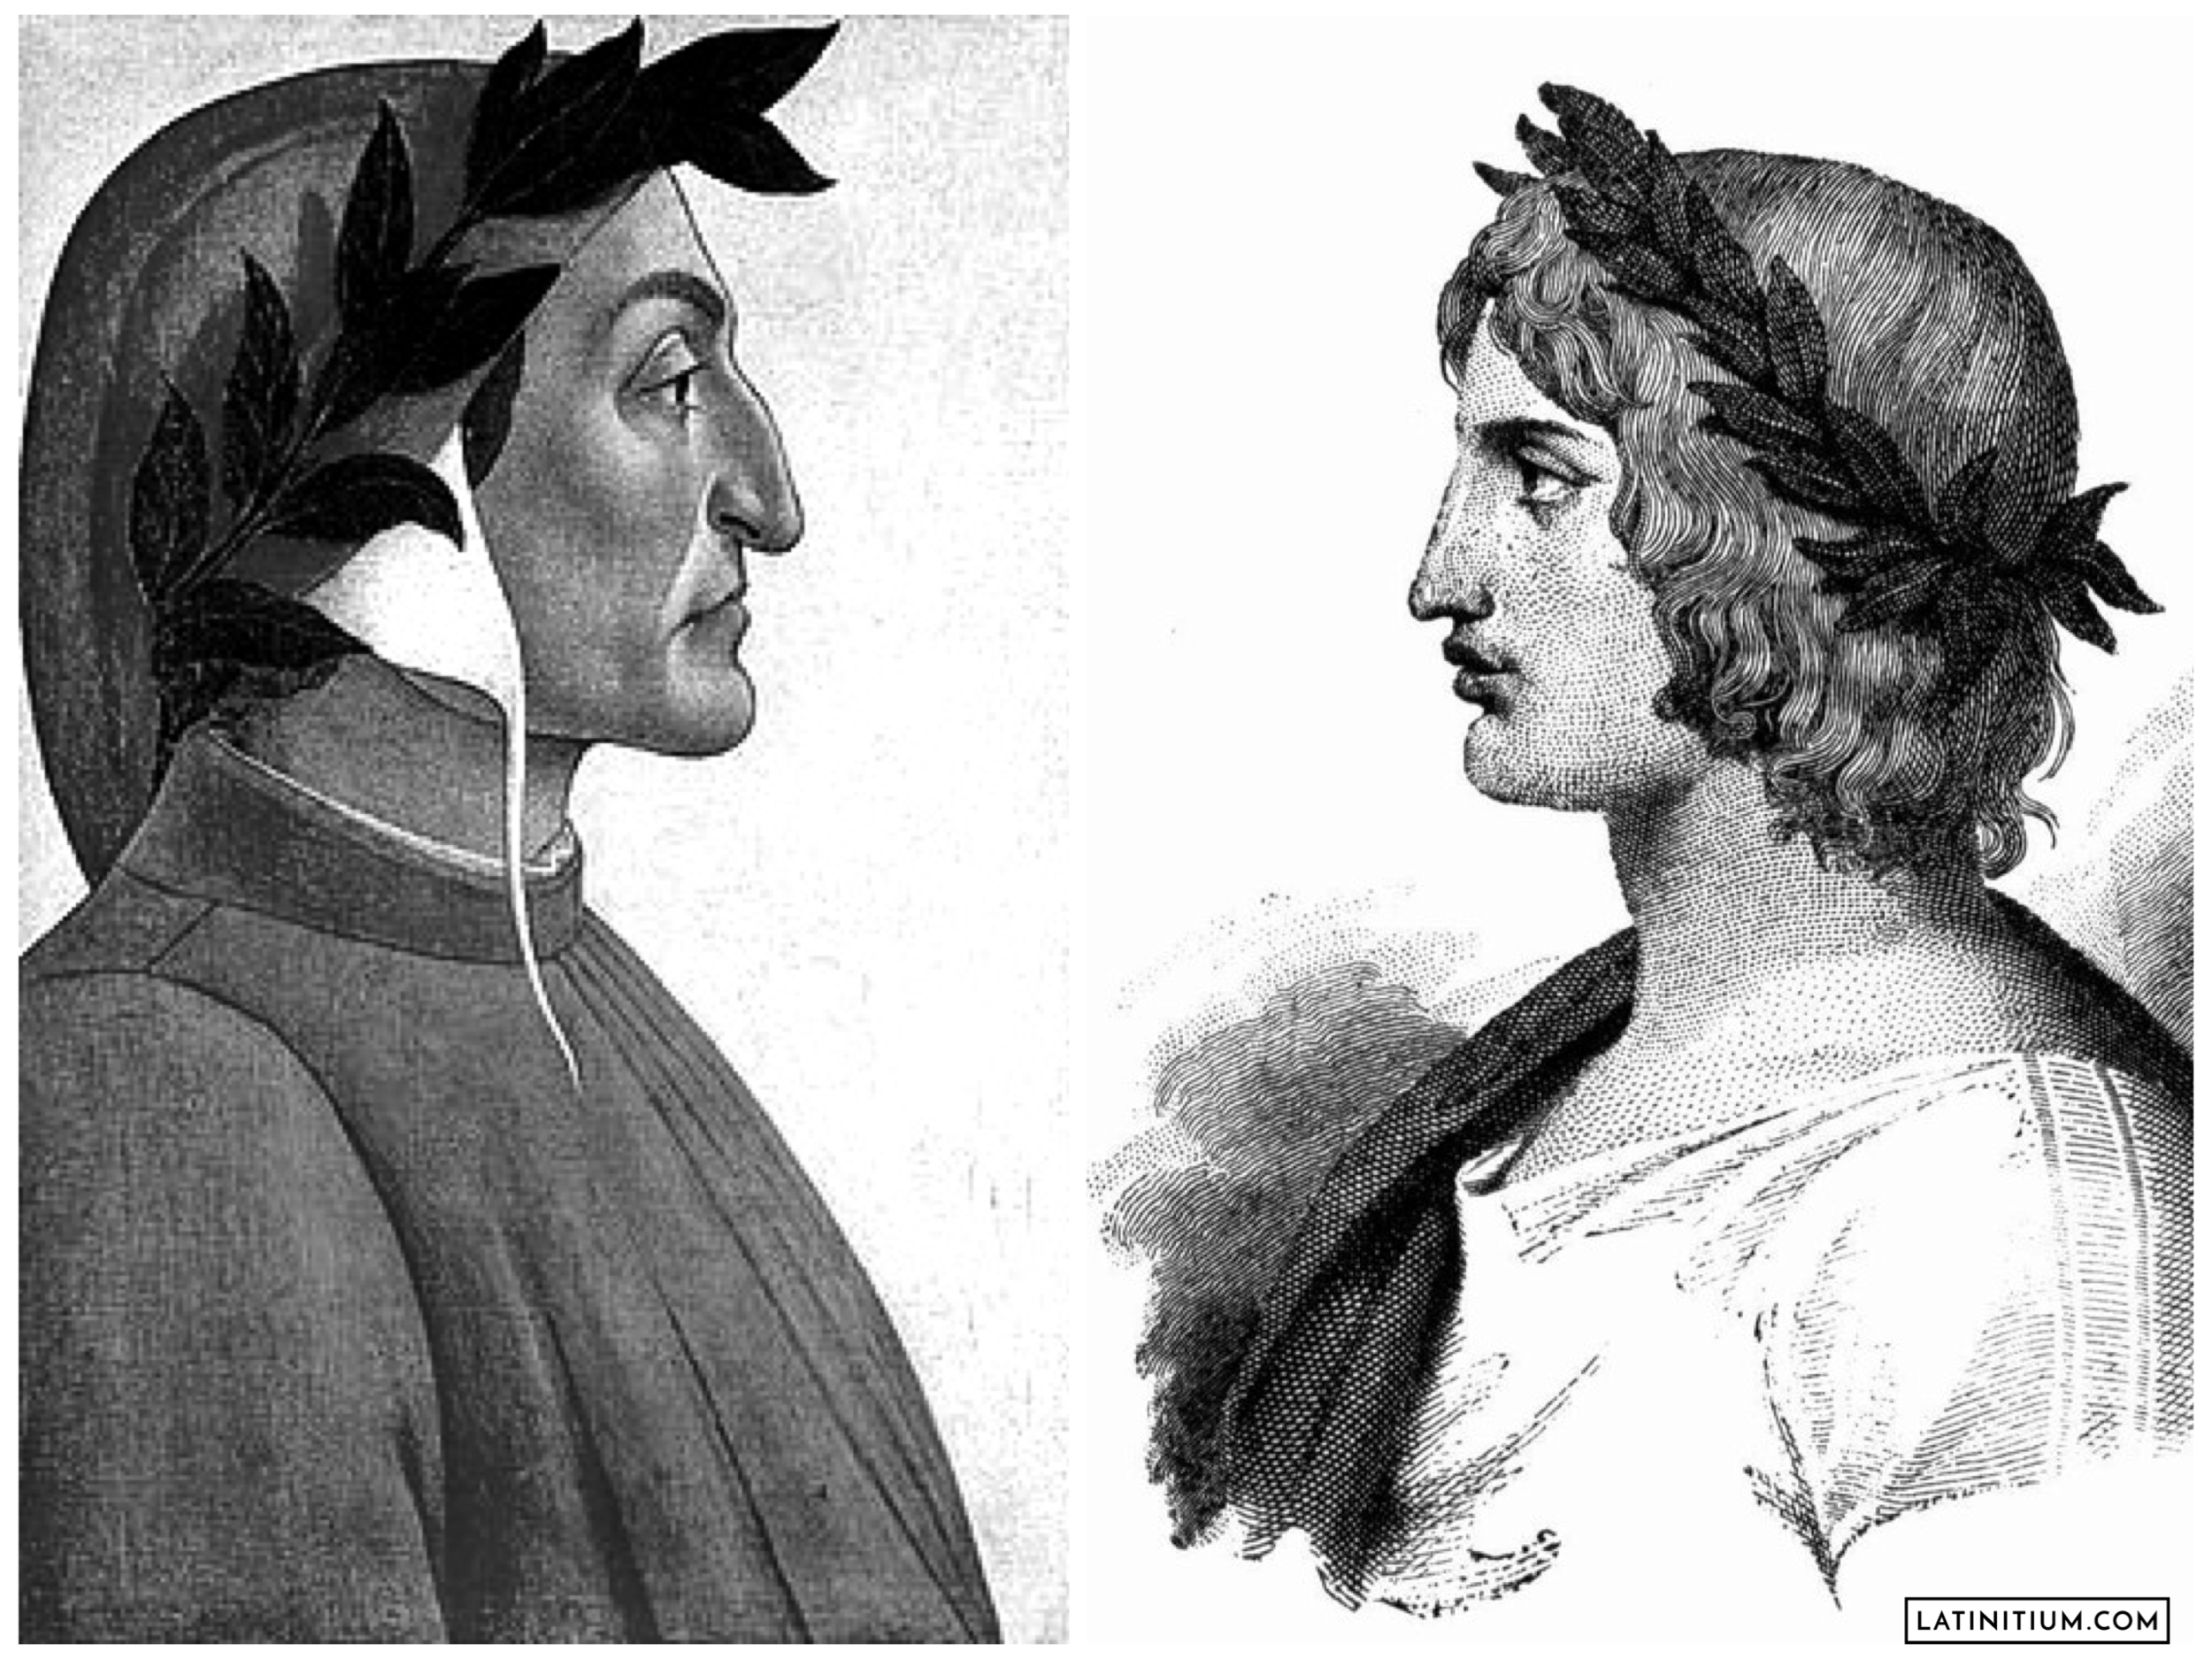 Dante by Botticelli to the left, and Vergilius, or Virgil, to the right.